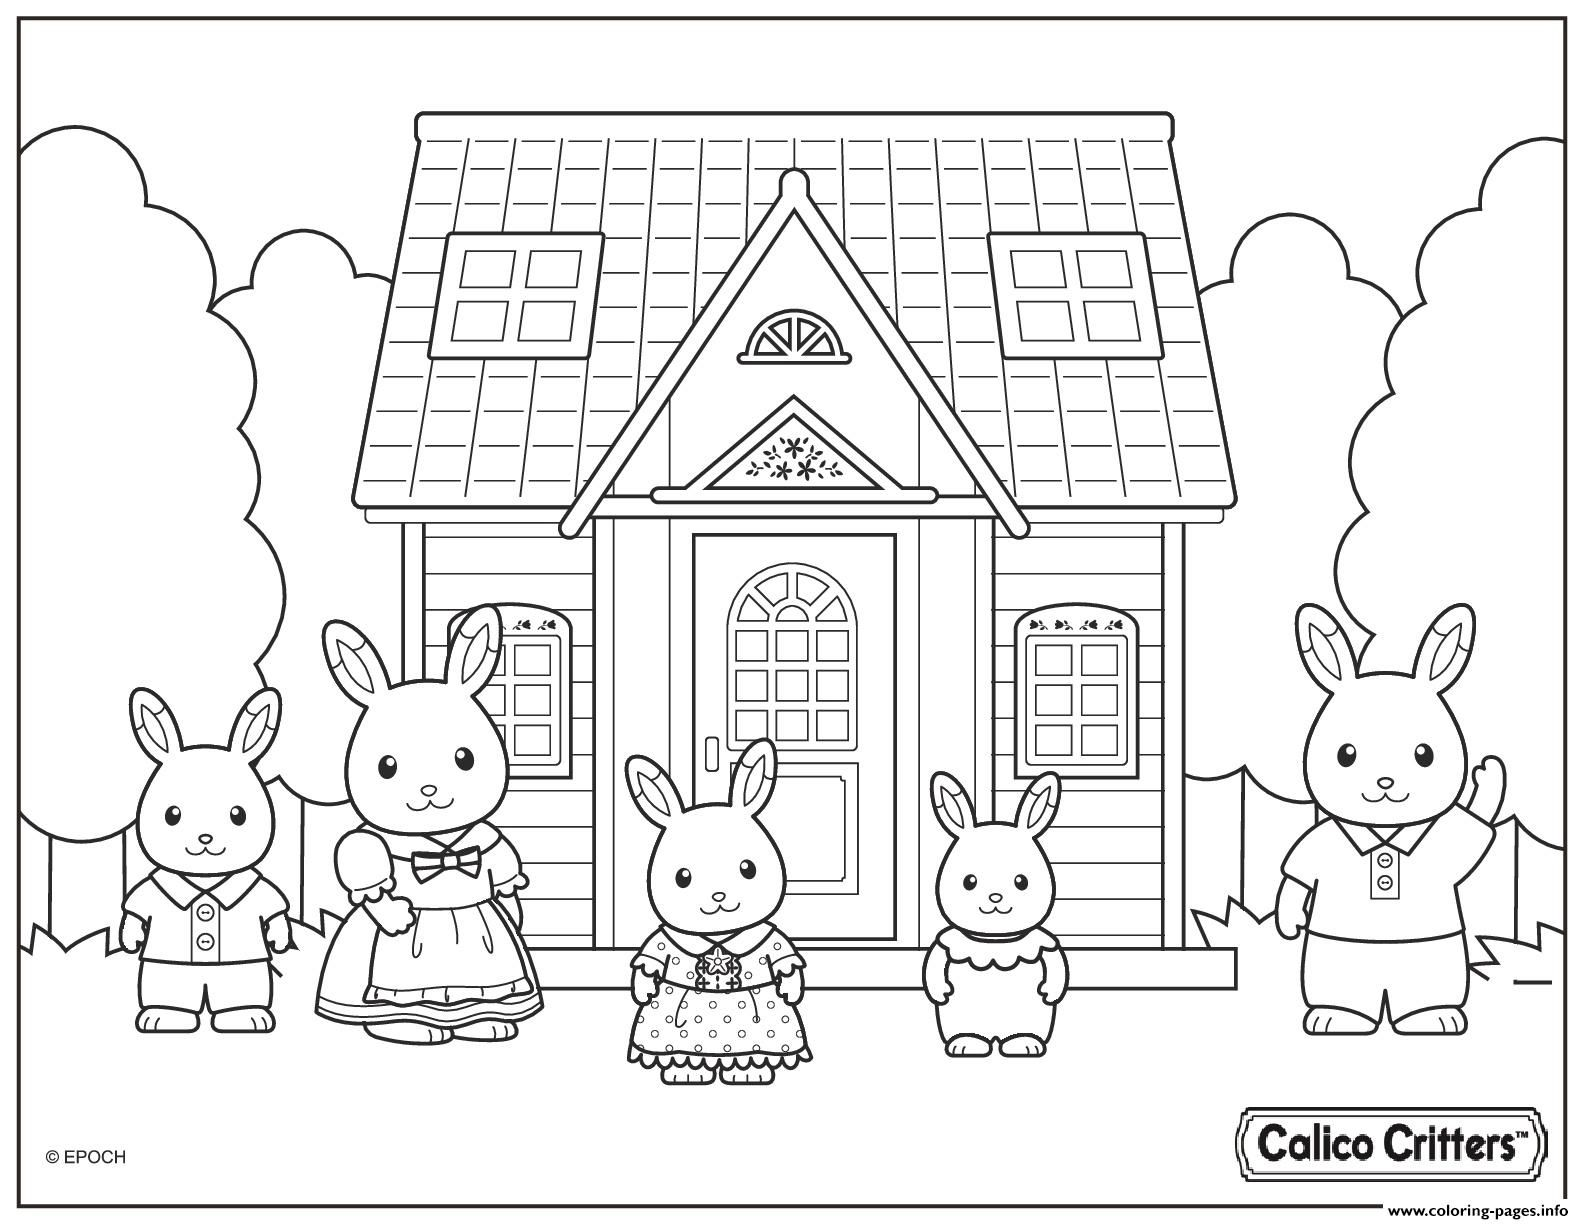 calico critters cute family coloring pages  family